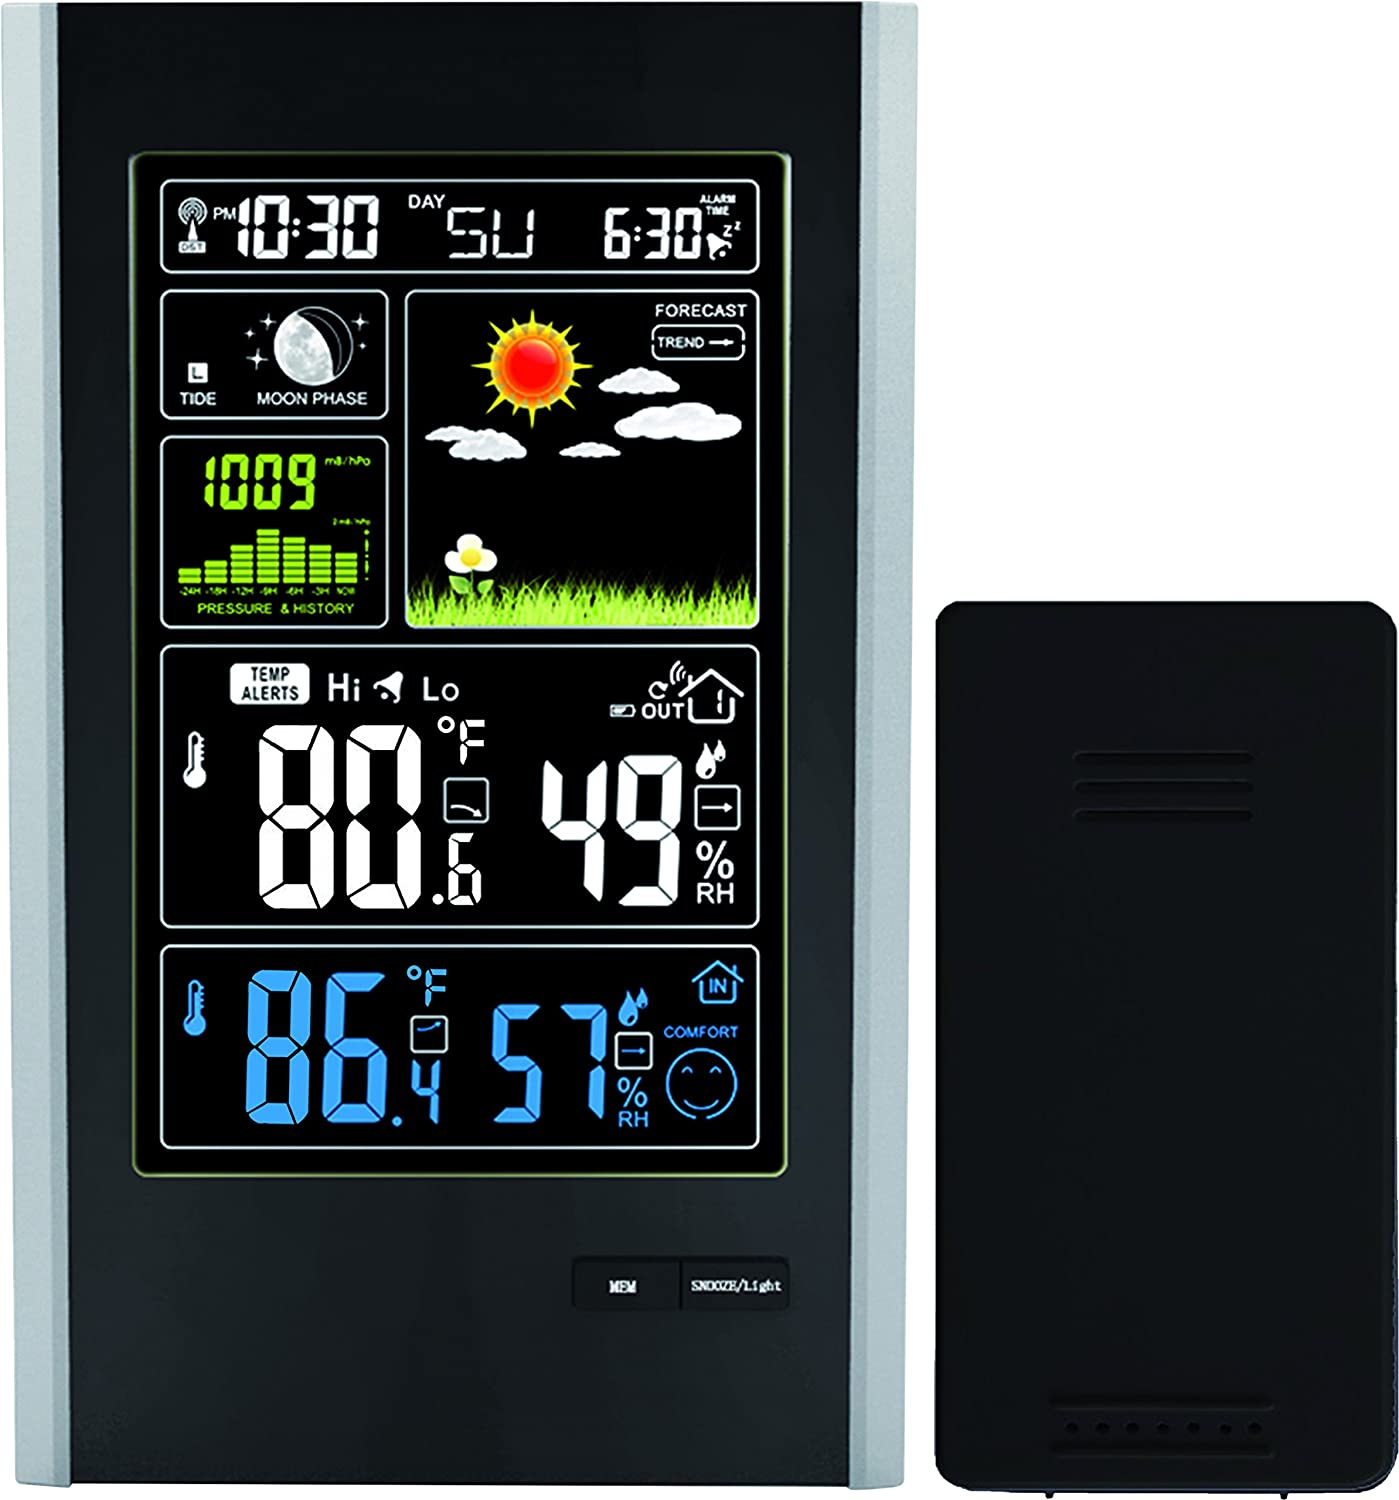 Wireless Weather Station with Indoor / Outdoor Wireless Sensor And USB Charge Port – TG646 Weather Station Clock With Color Icons For Forecasting / Temperature With Alerts / Humidity by Think Gizmos.